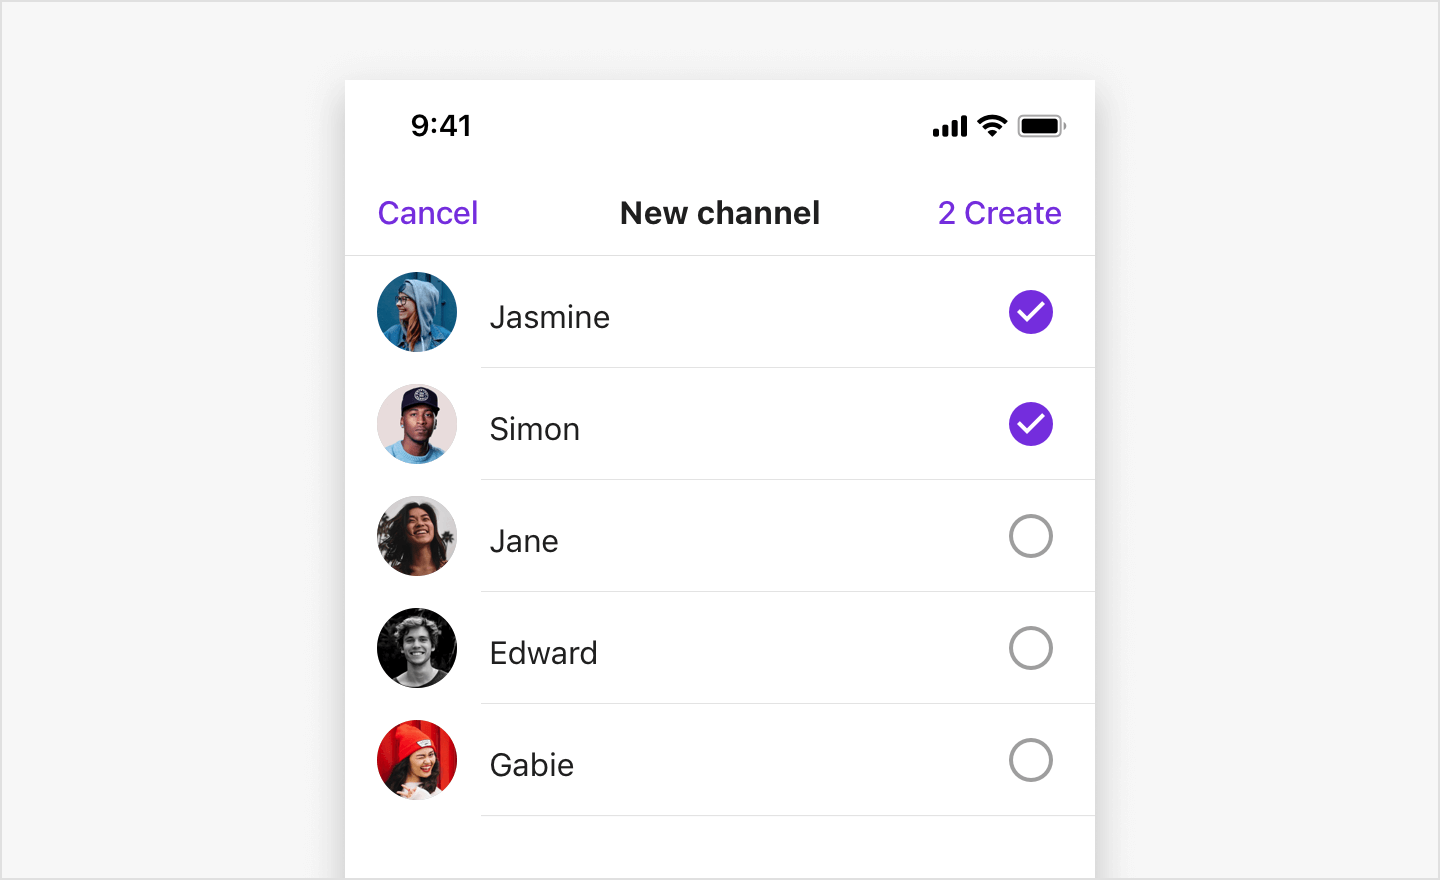 Image|Two users are selected from the user list in the New channel view.